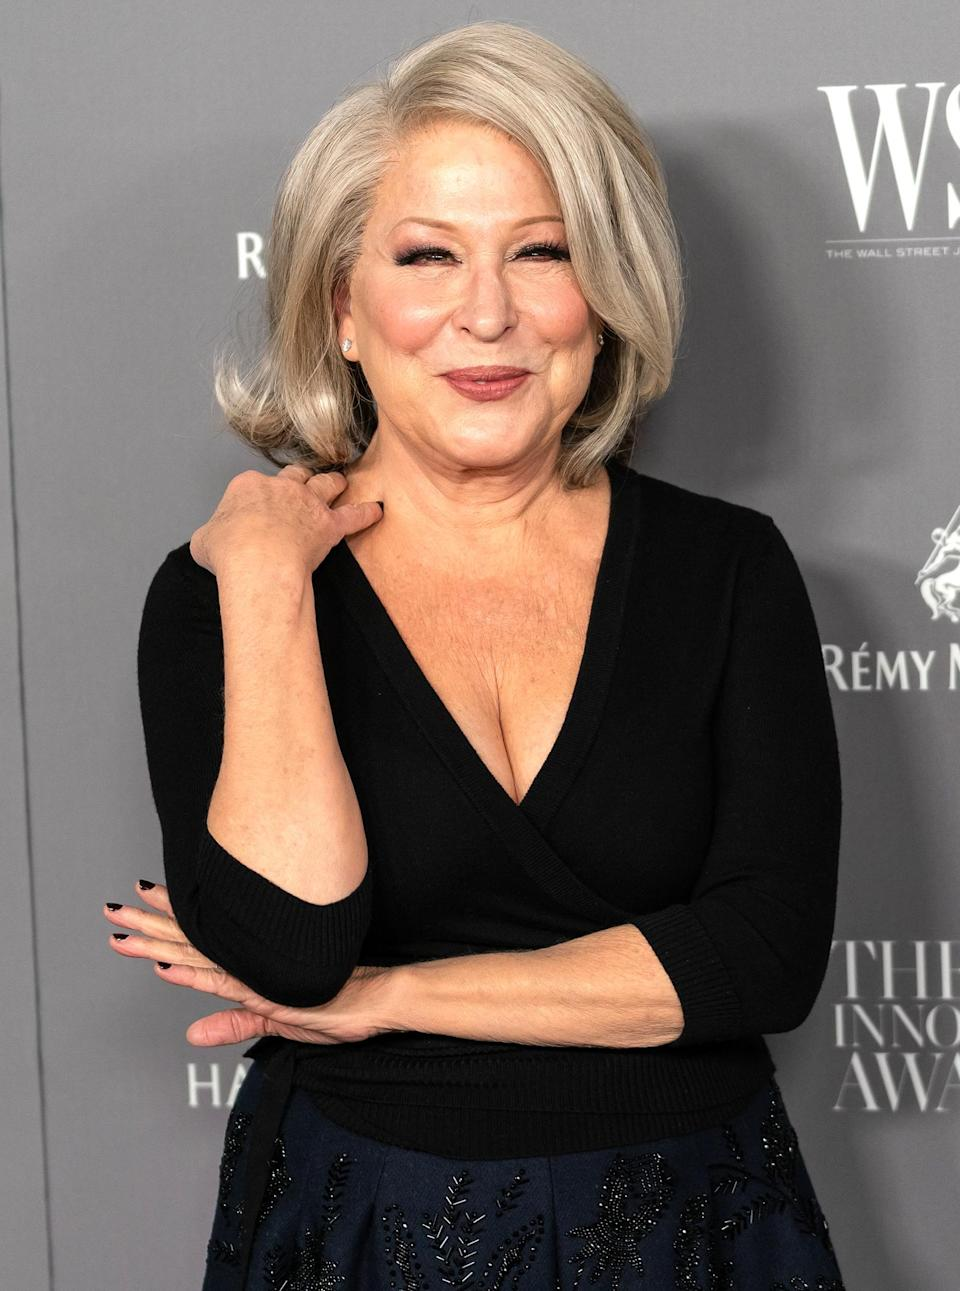 """<p>needs an Oscar, having already won Emmys for outstanding performance in a variety or music program, Grammys for best new artist, best pop vocal performance (for """"The Rose"""") and record of the year (for """"Wind Beneath My Wings), a Tony for best actress in a musical (<em>Hello, Dolly!</em>) and the Special Tony Award for her contributions to Broadway.</p>"""